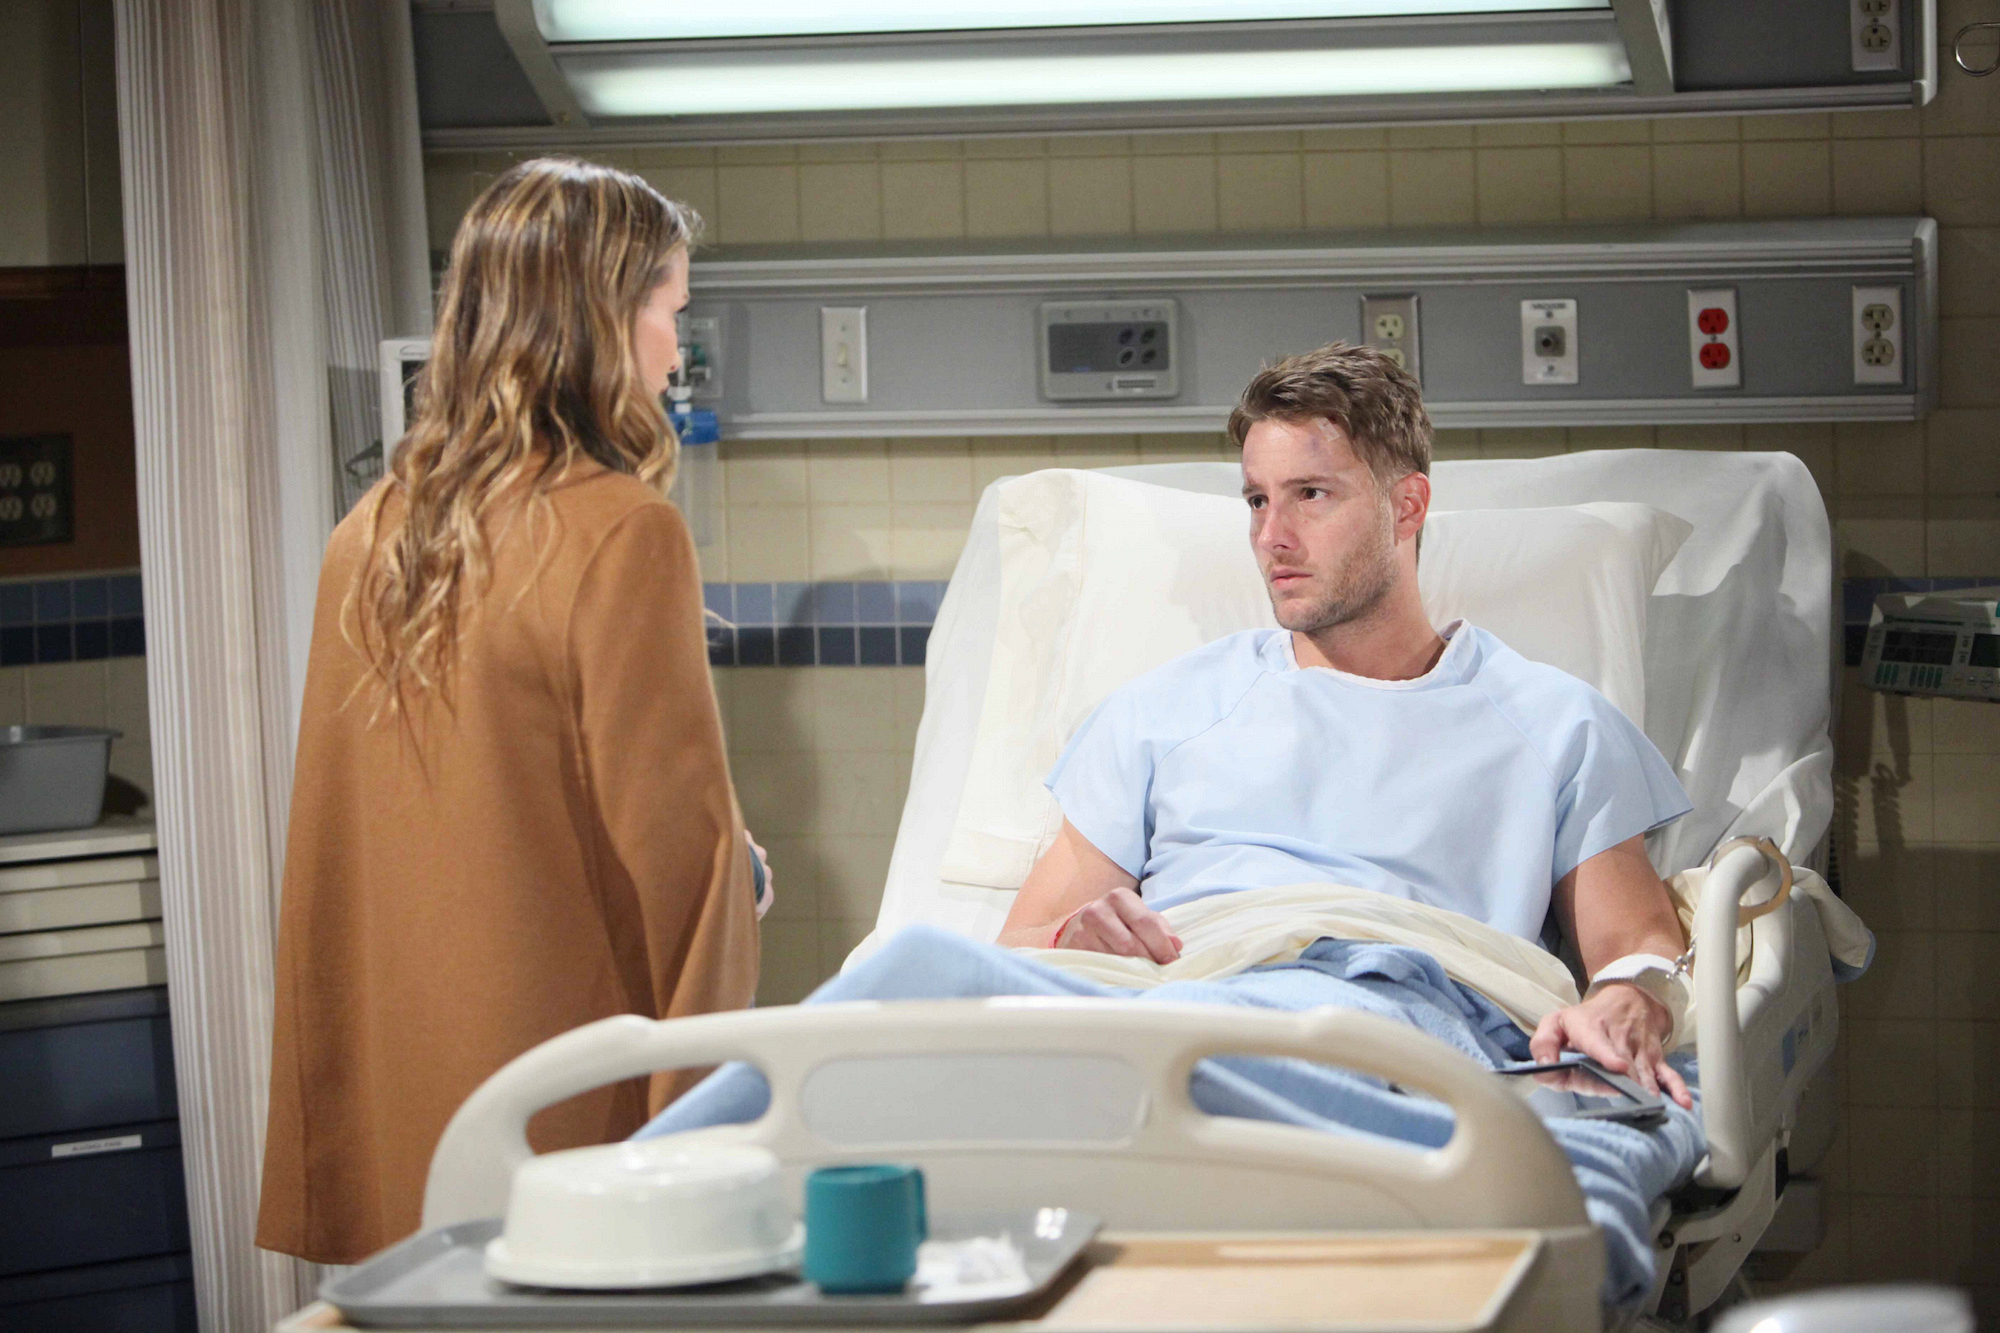 Chelsea rushes to the hospital to question Adam.